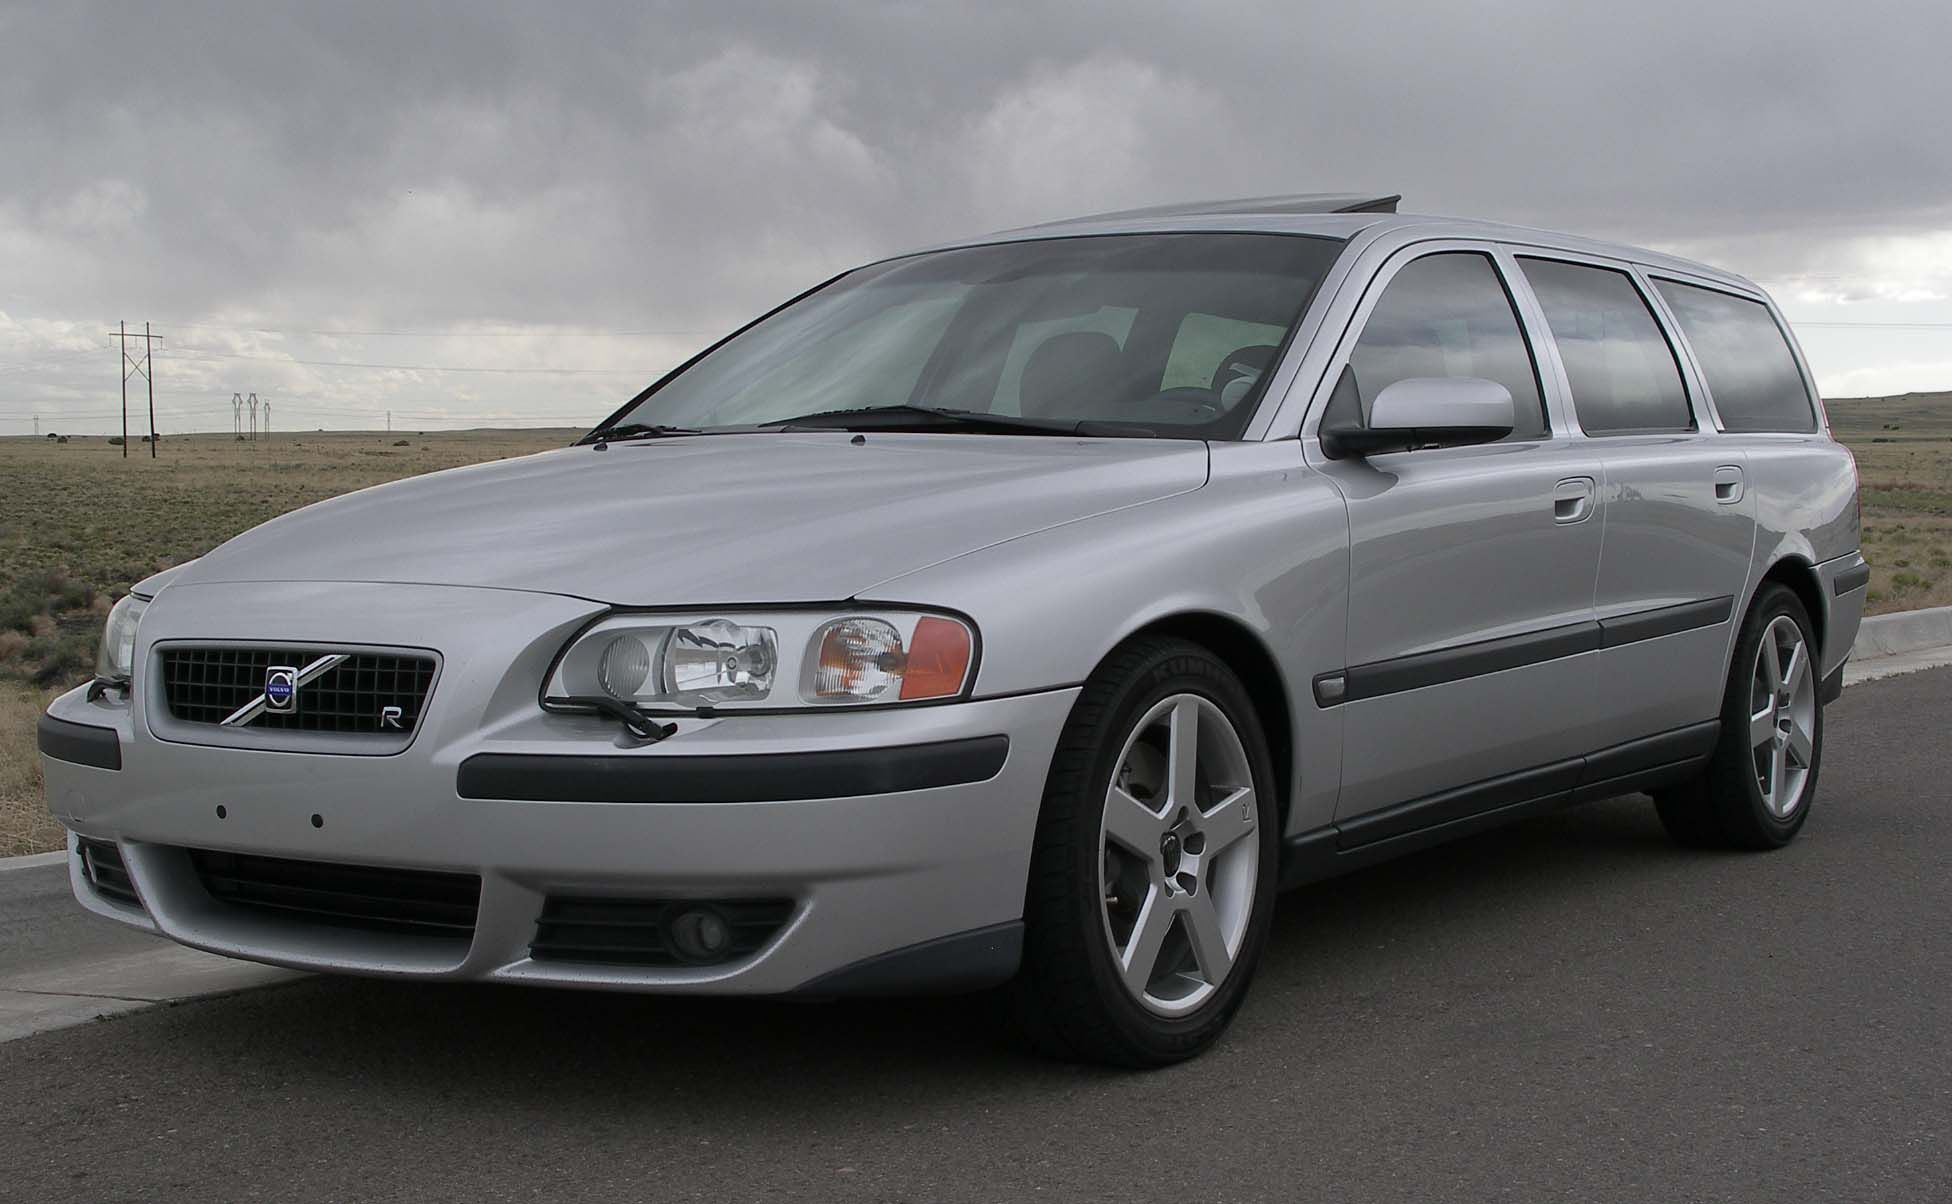 Volvo V70 R Awd Fast Awd Sleeper Wagon Boring On The Outside But It S Consequentially The Perfect Daily Driver Volvo V70 Volvo Volvo Cars